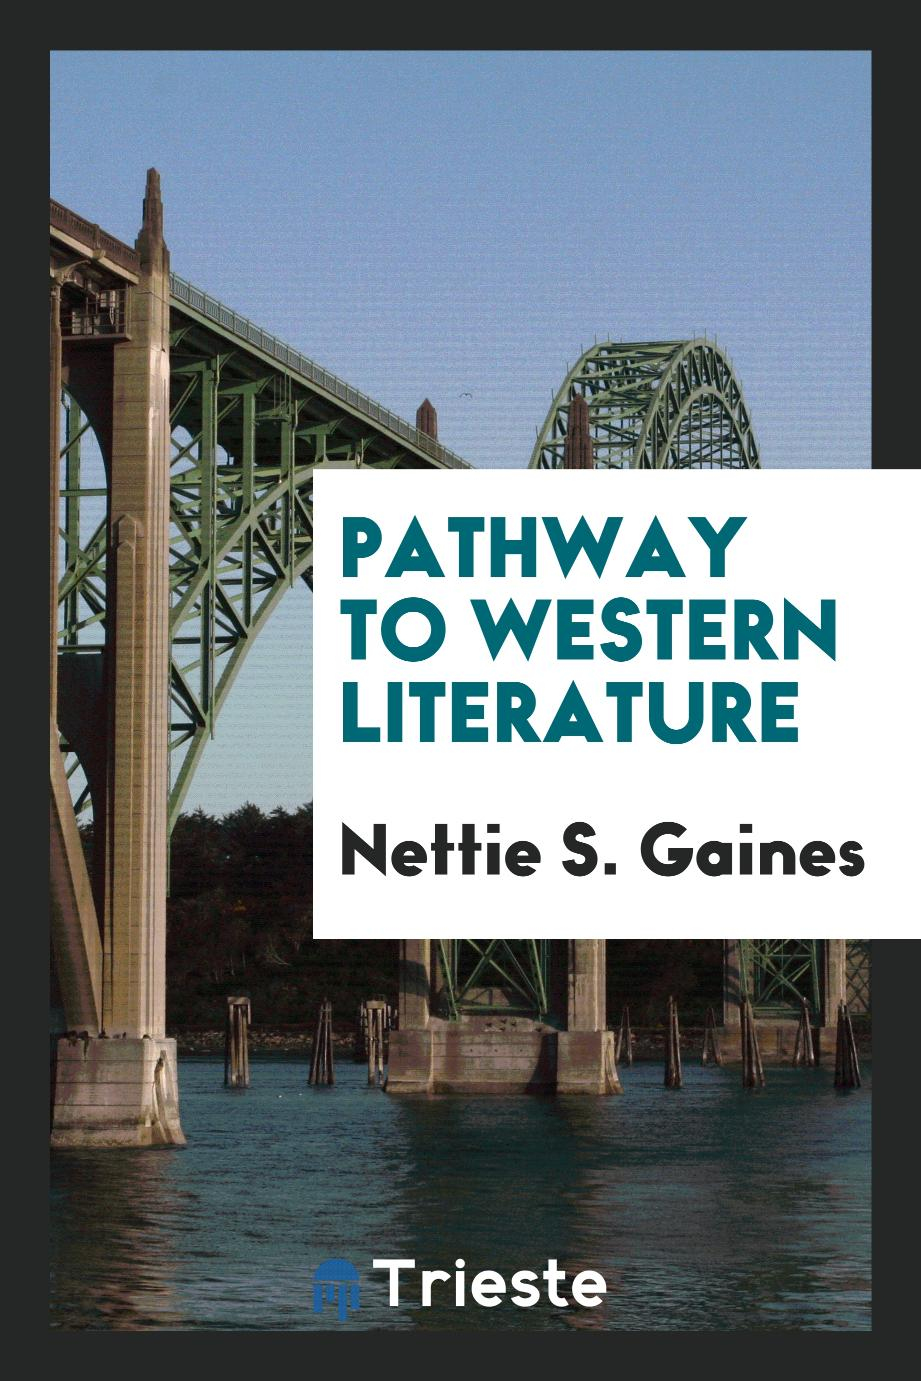 Nettie S. Gaines - Pathway to western literature